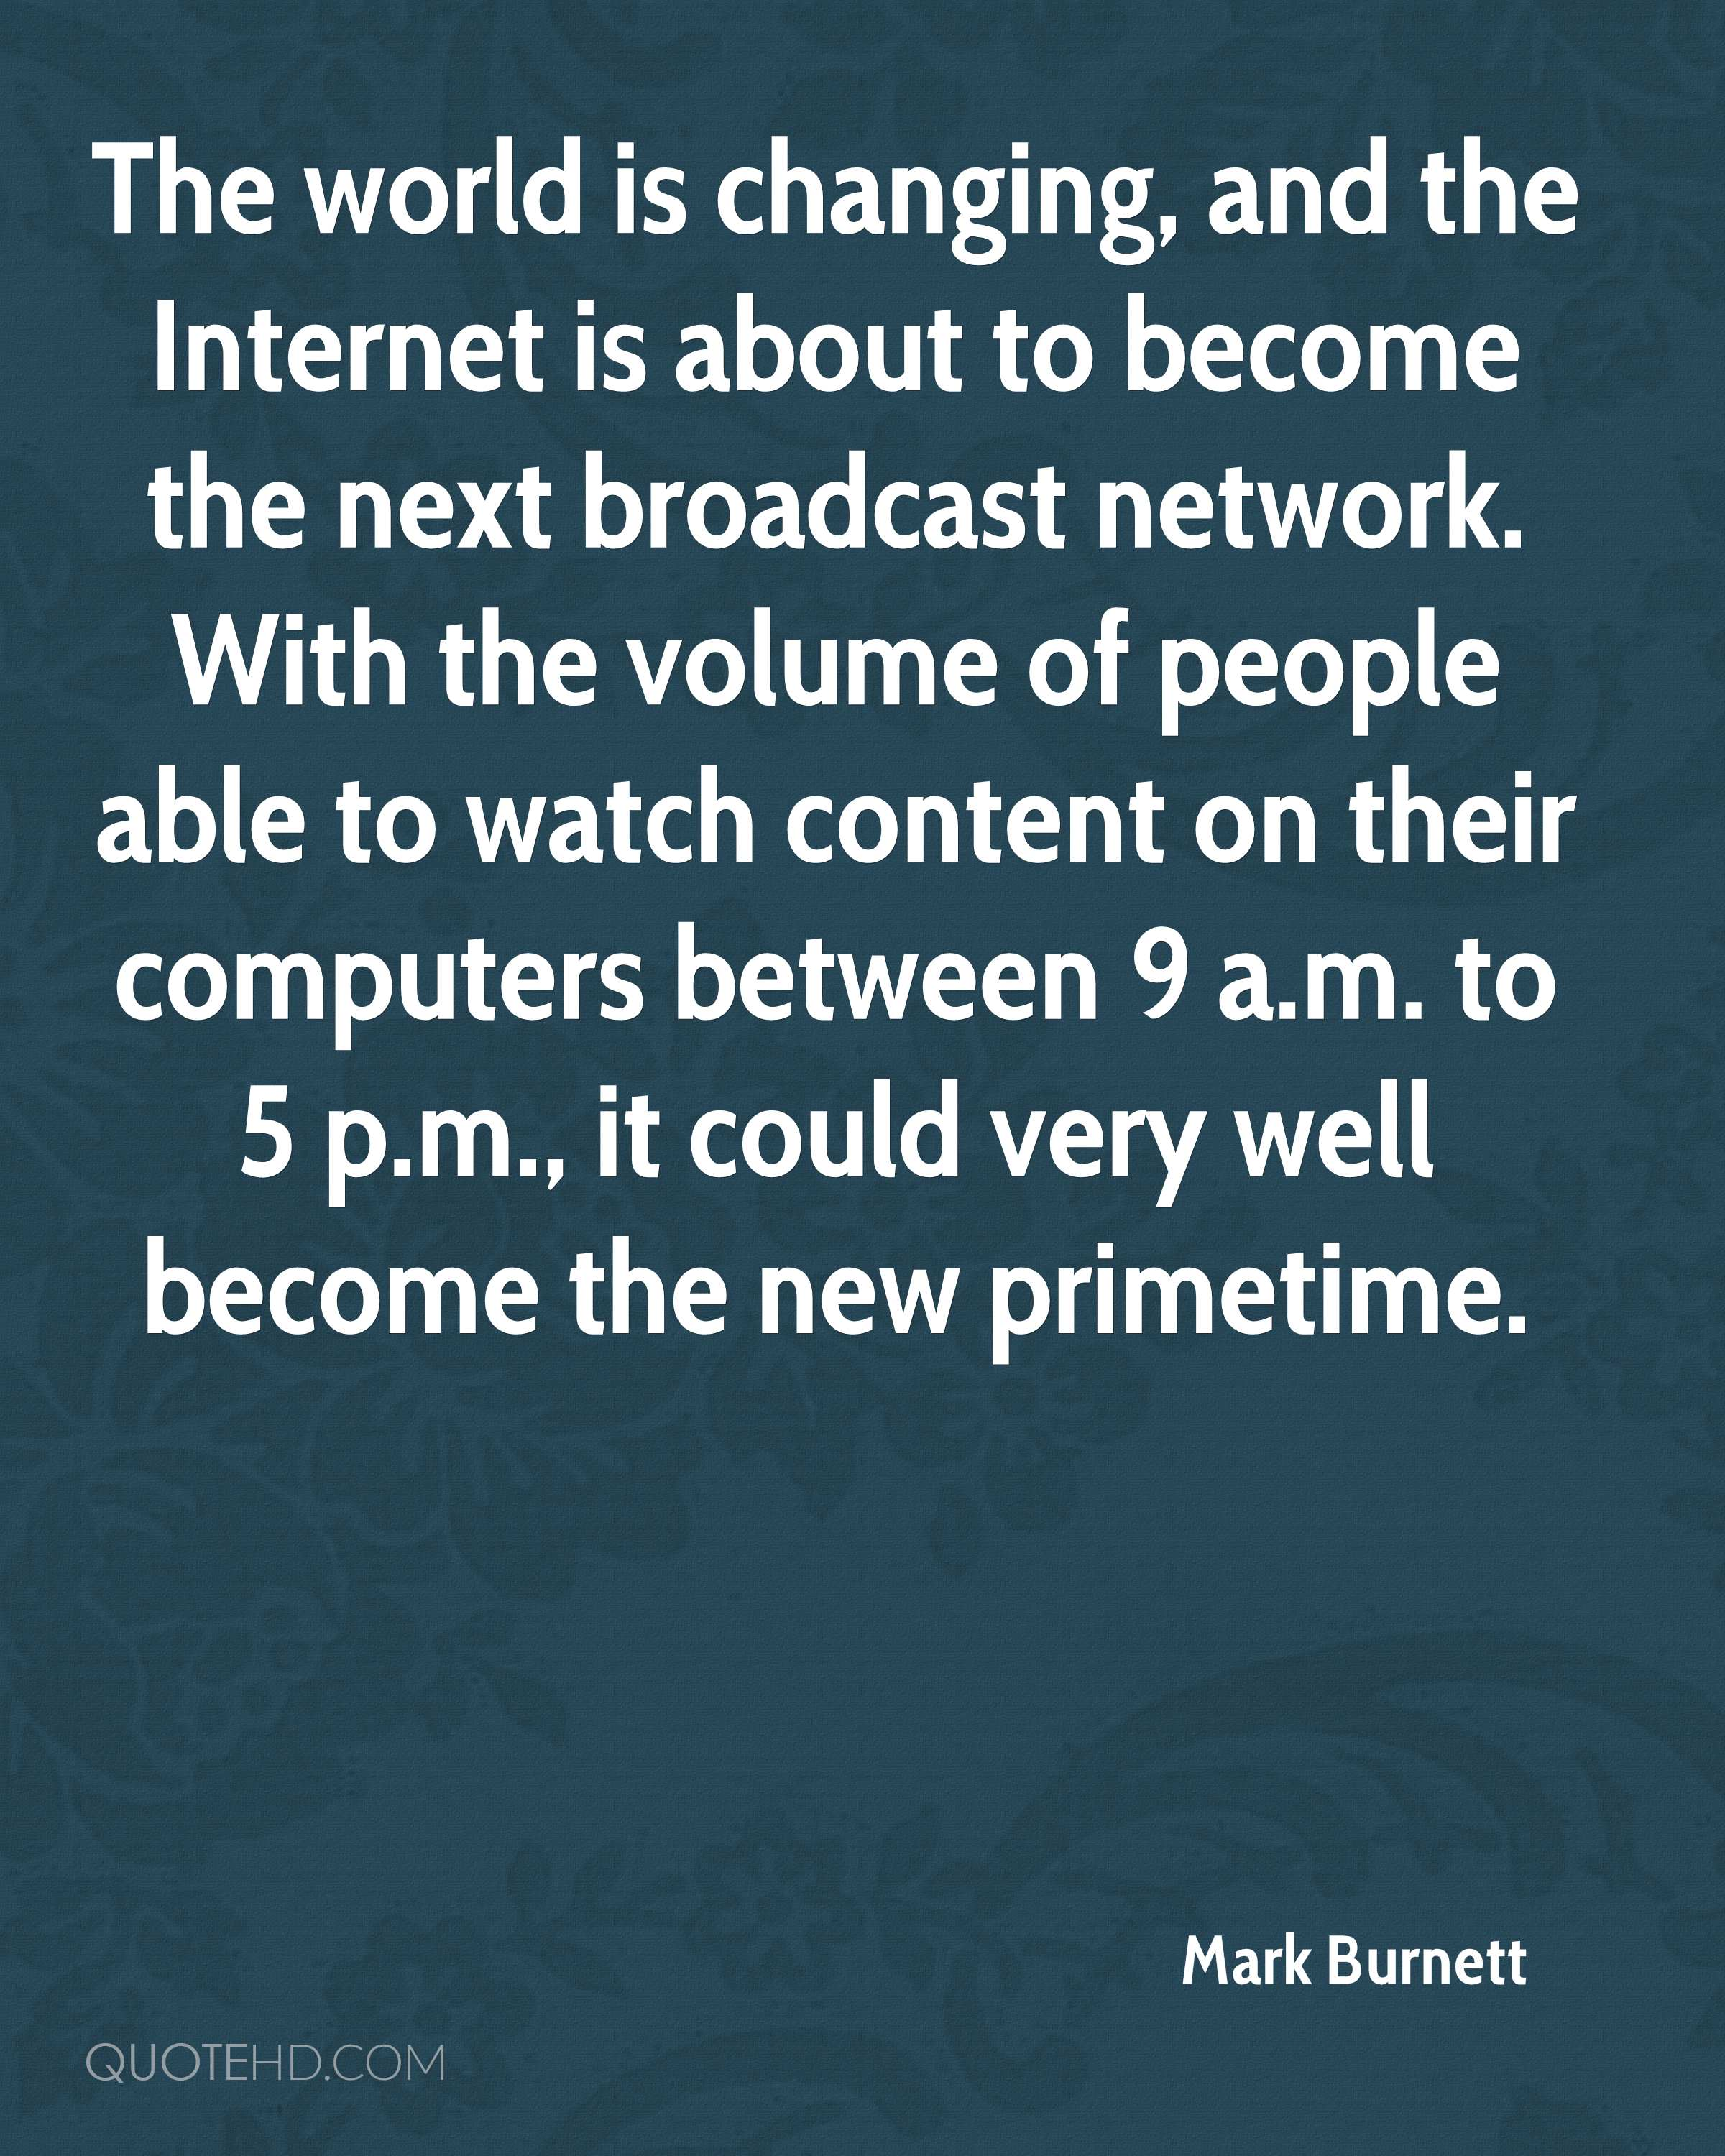 The world is changing, and the Internet is about to become the next broadcast network. With the volume of people able to watch content on their computers between 9 a.m. to 5 p.m., it could very well become the new primetime.